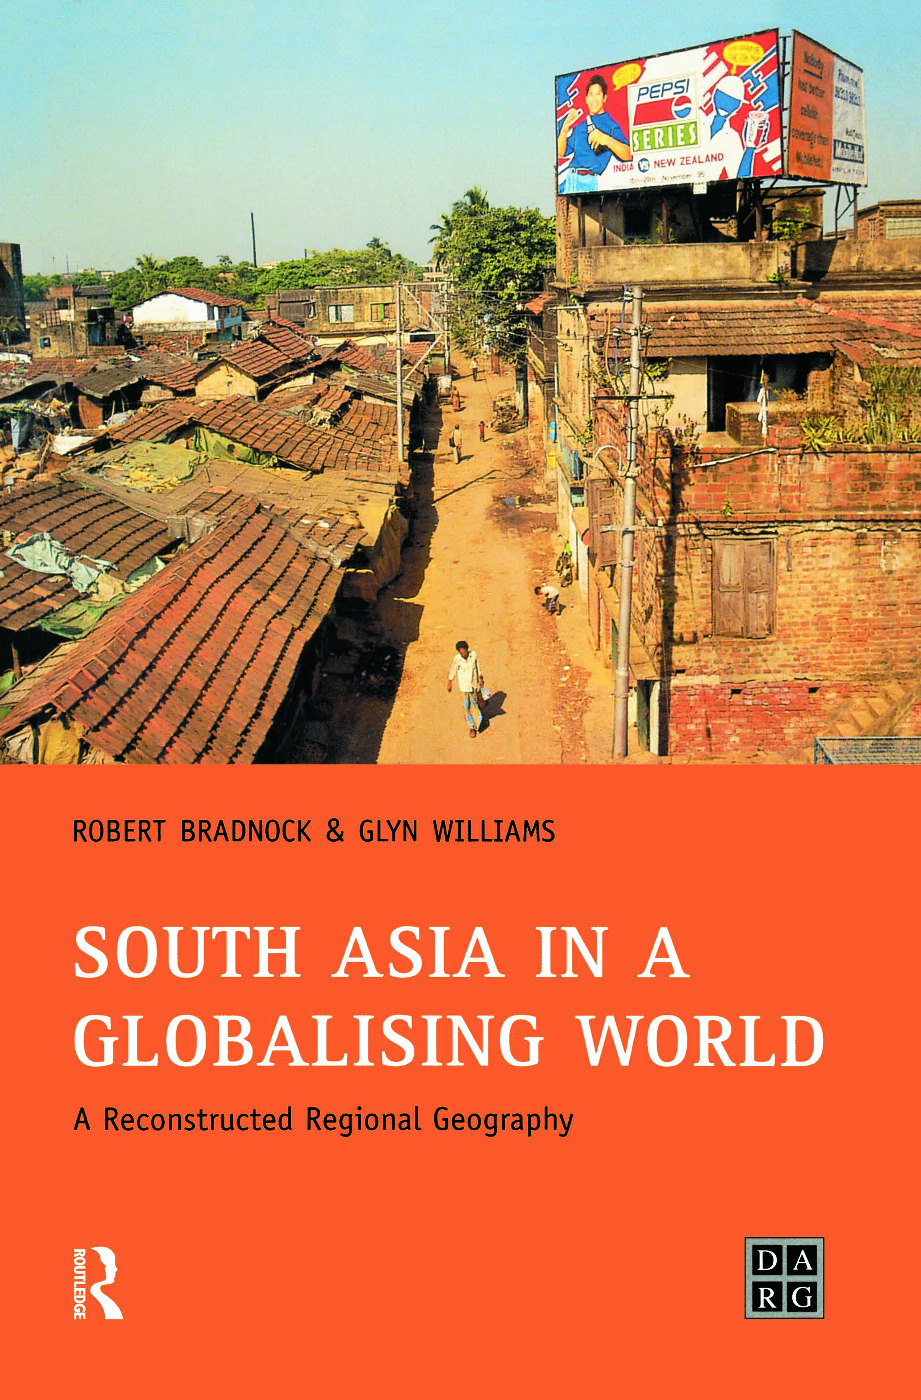 South Asia in a Globalising World